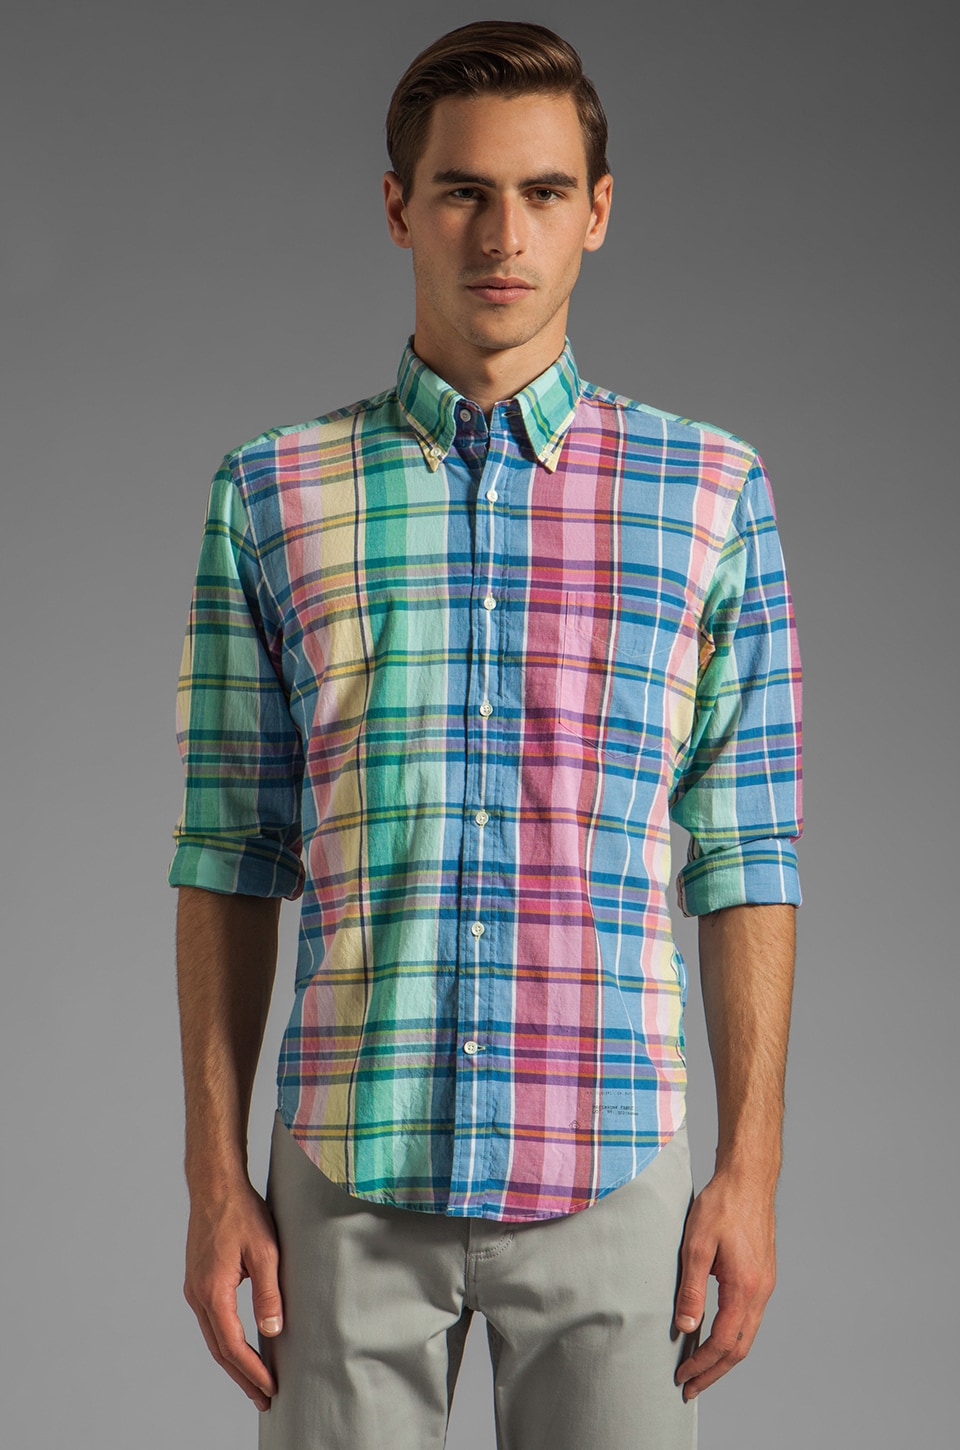 GANT Rugger India Madras E-Z OBD Shirt in Multi